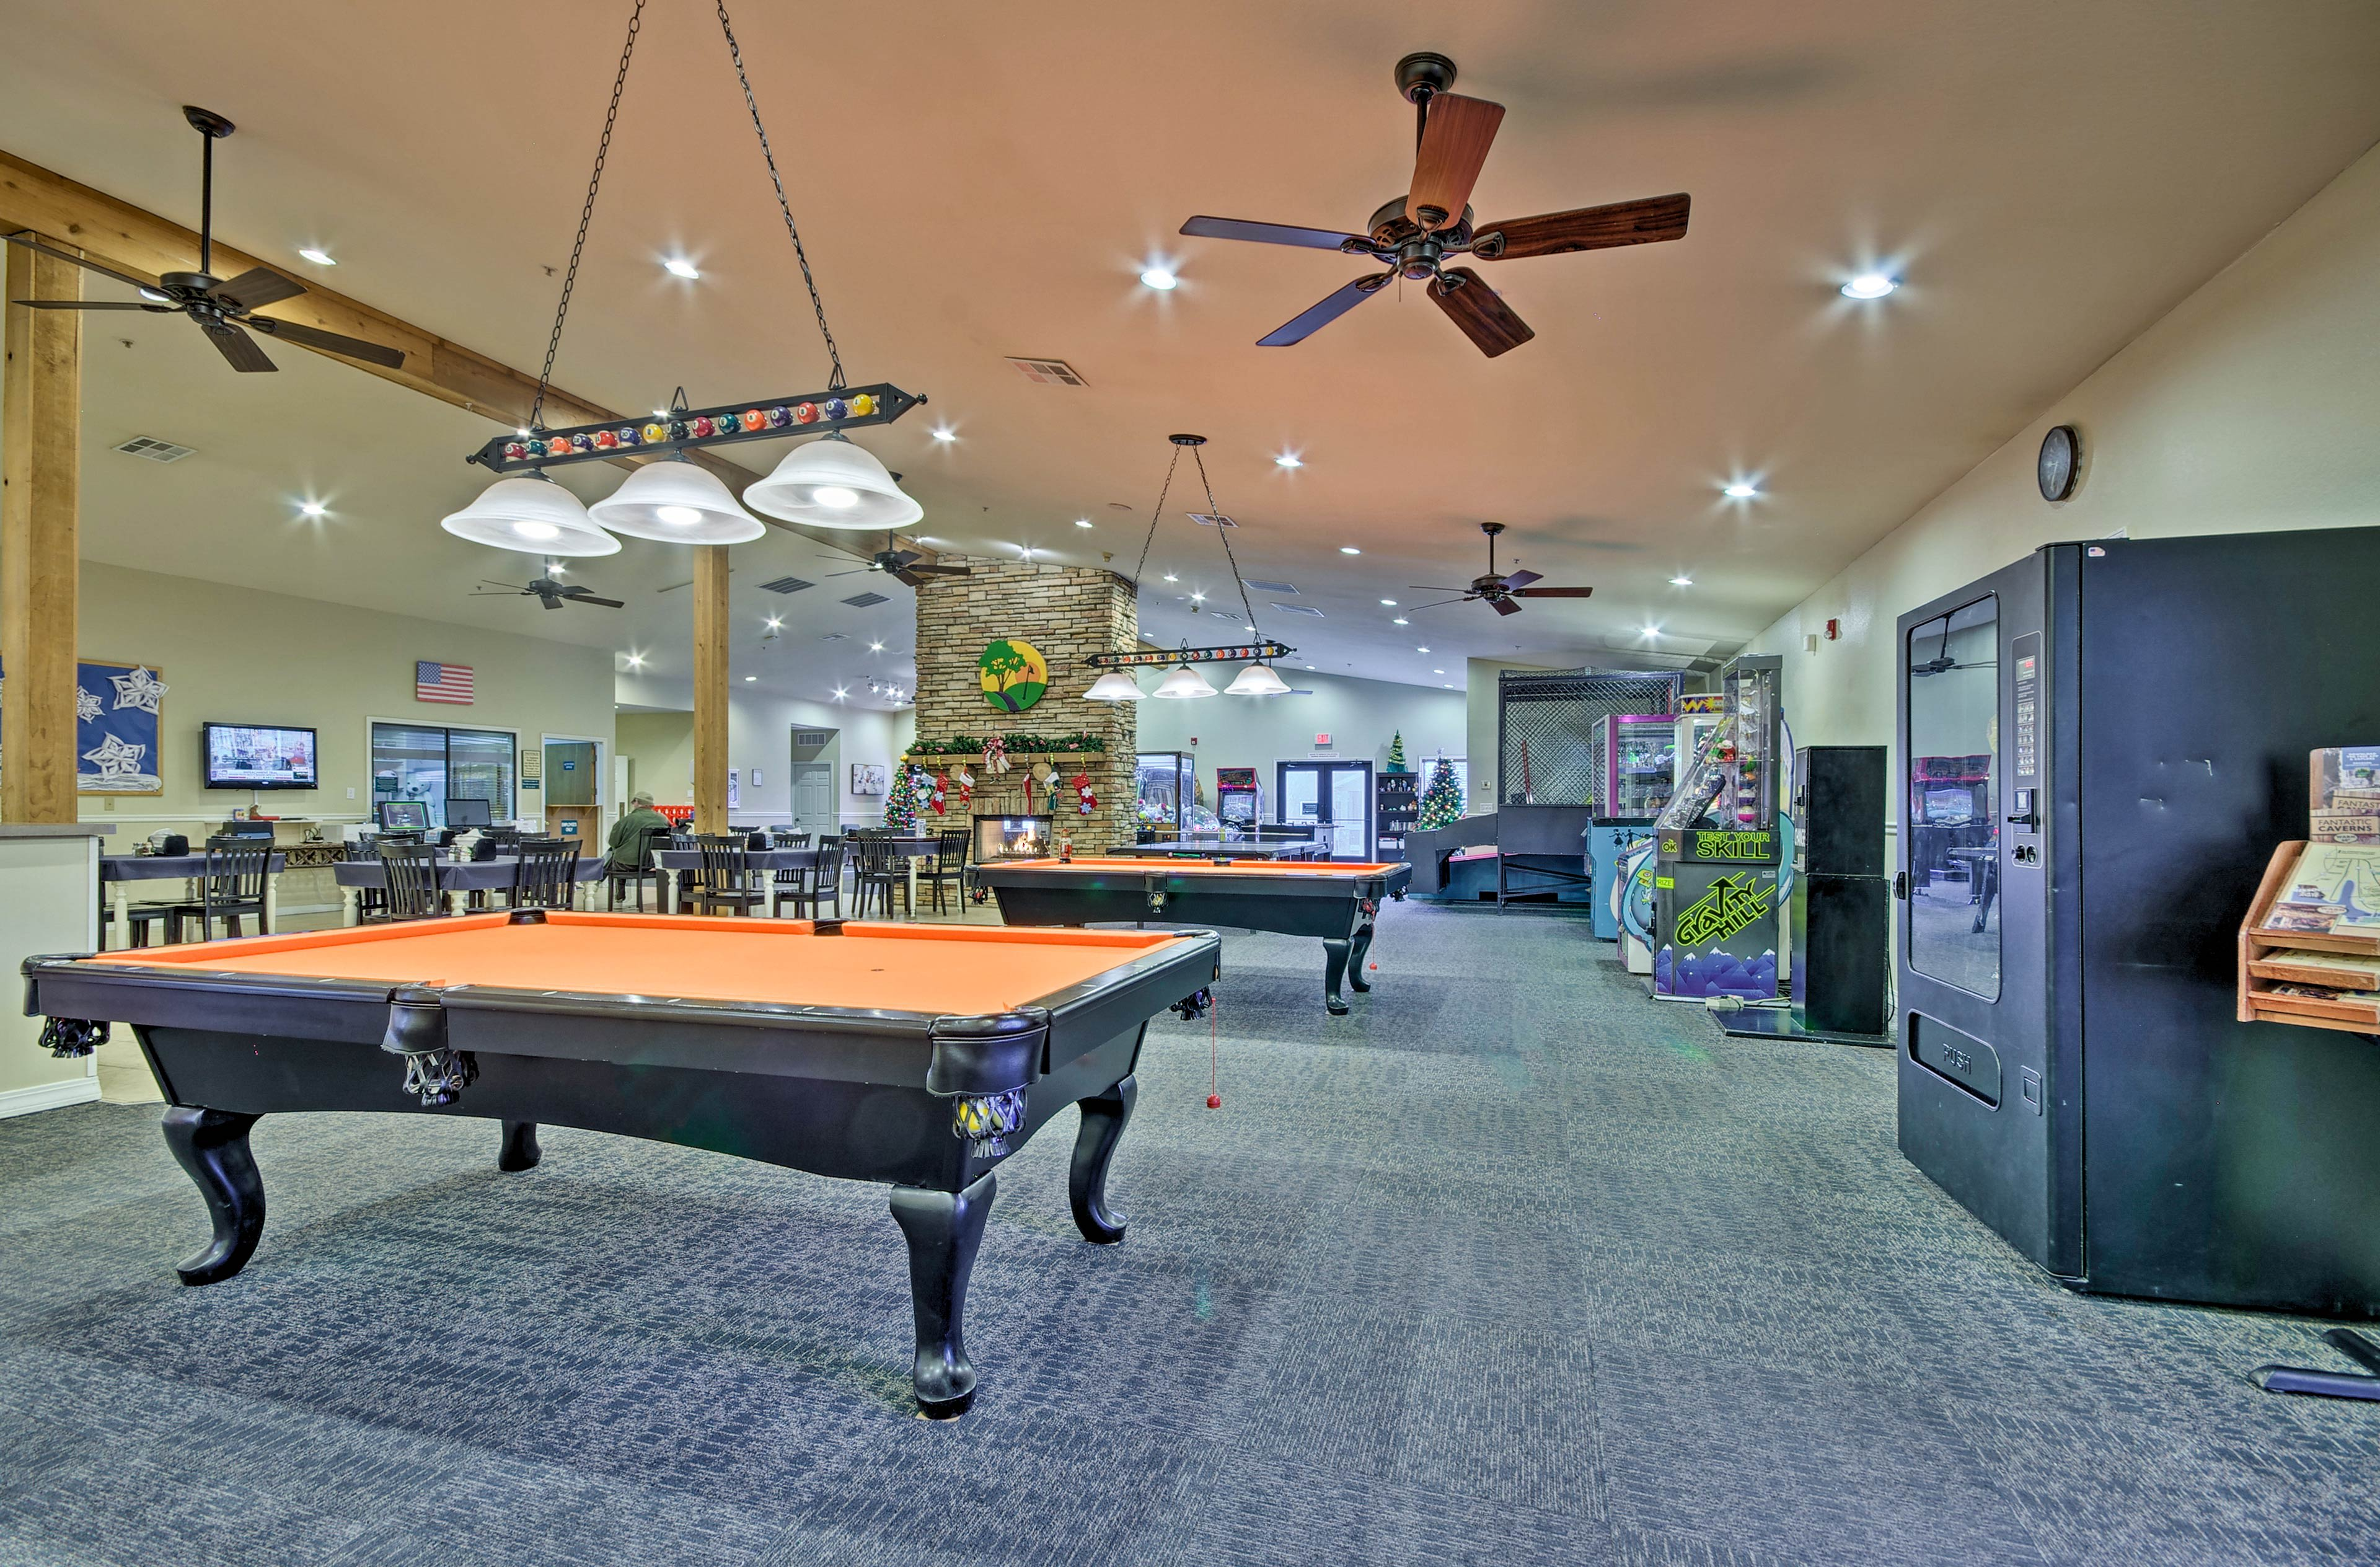 Activity Center | Free Pool Table, Ping Pong & More